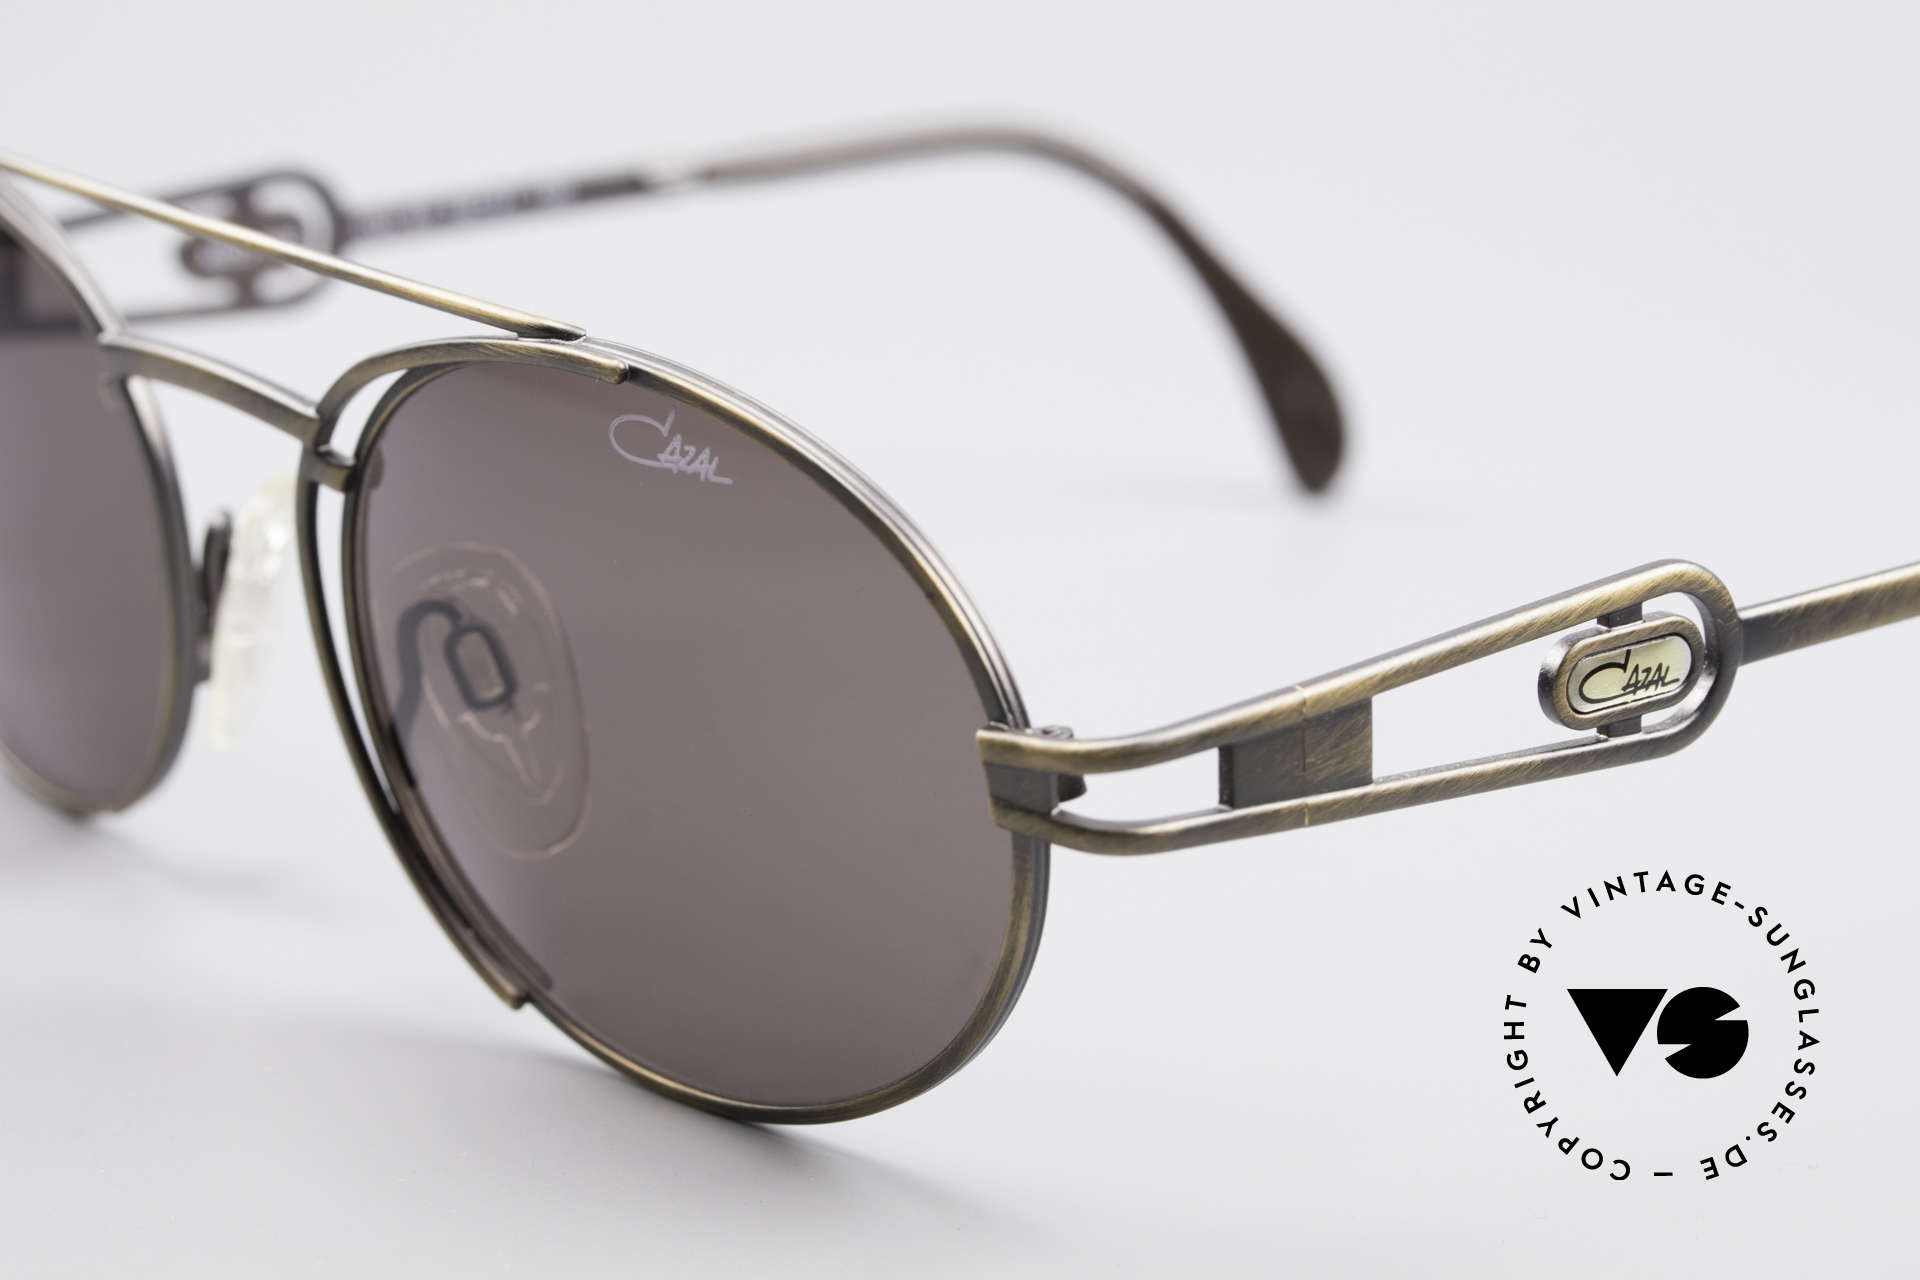 Cazal 965 Oval Steampunk Style Shades, never used, NOS (like all our vintage CAZAL eyewear), Made for Men and Women